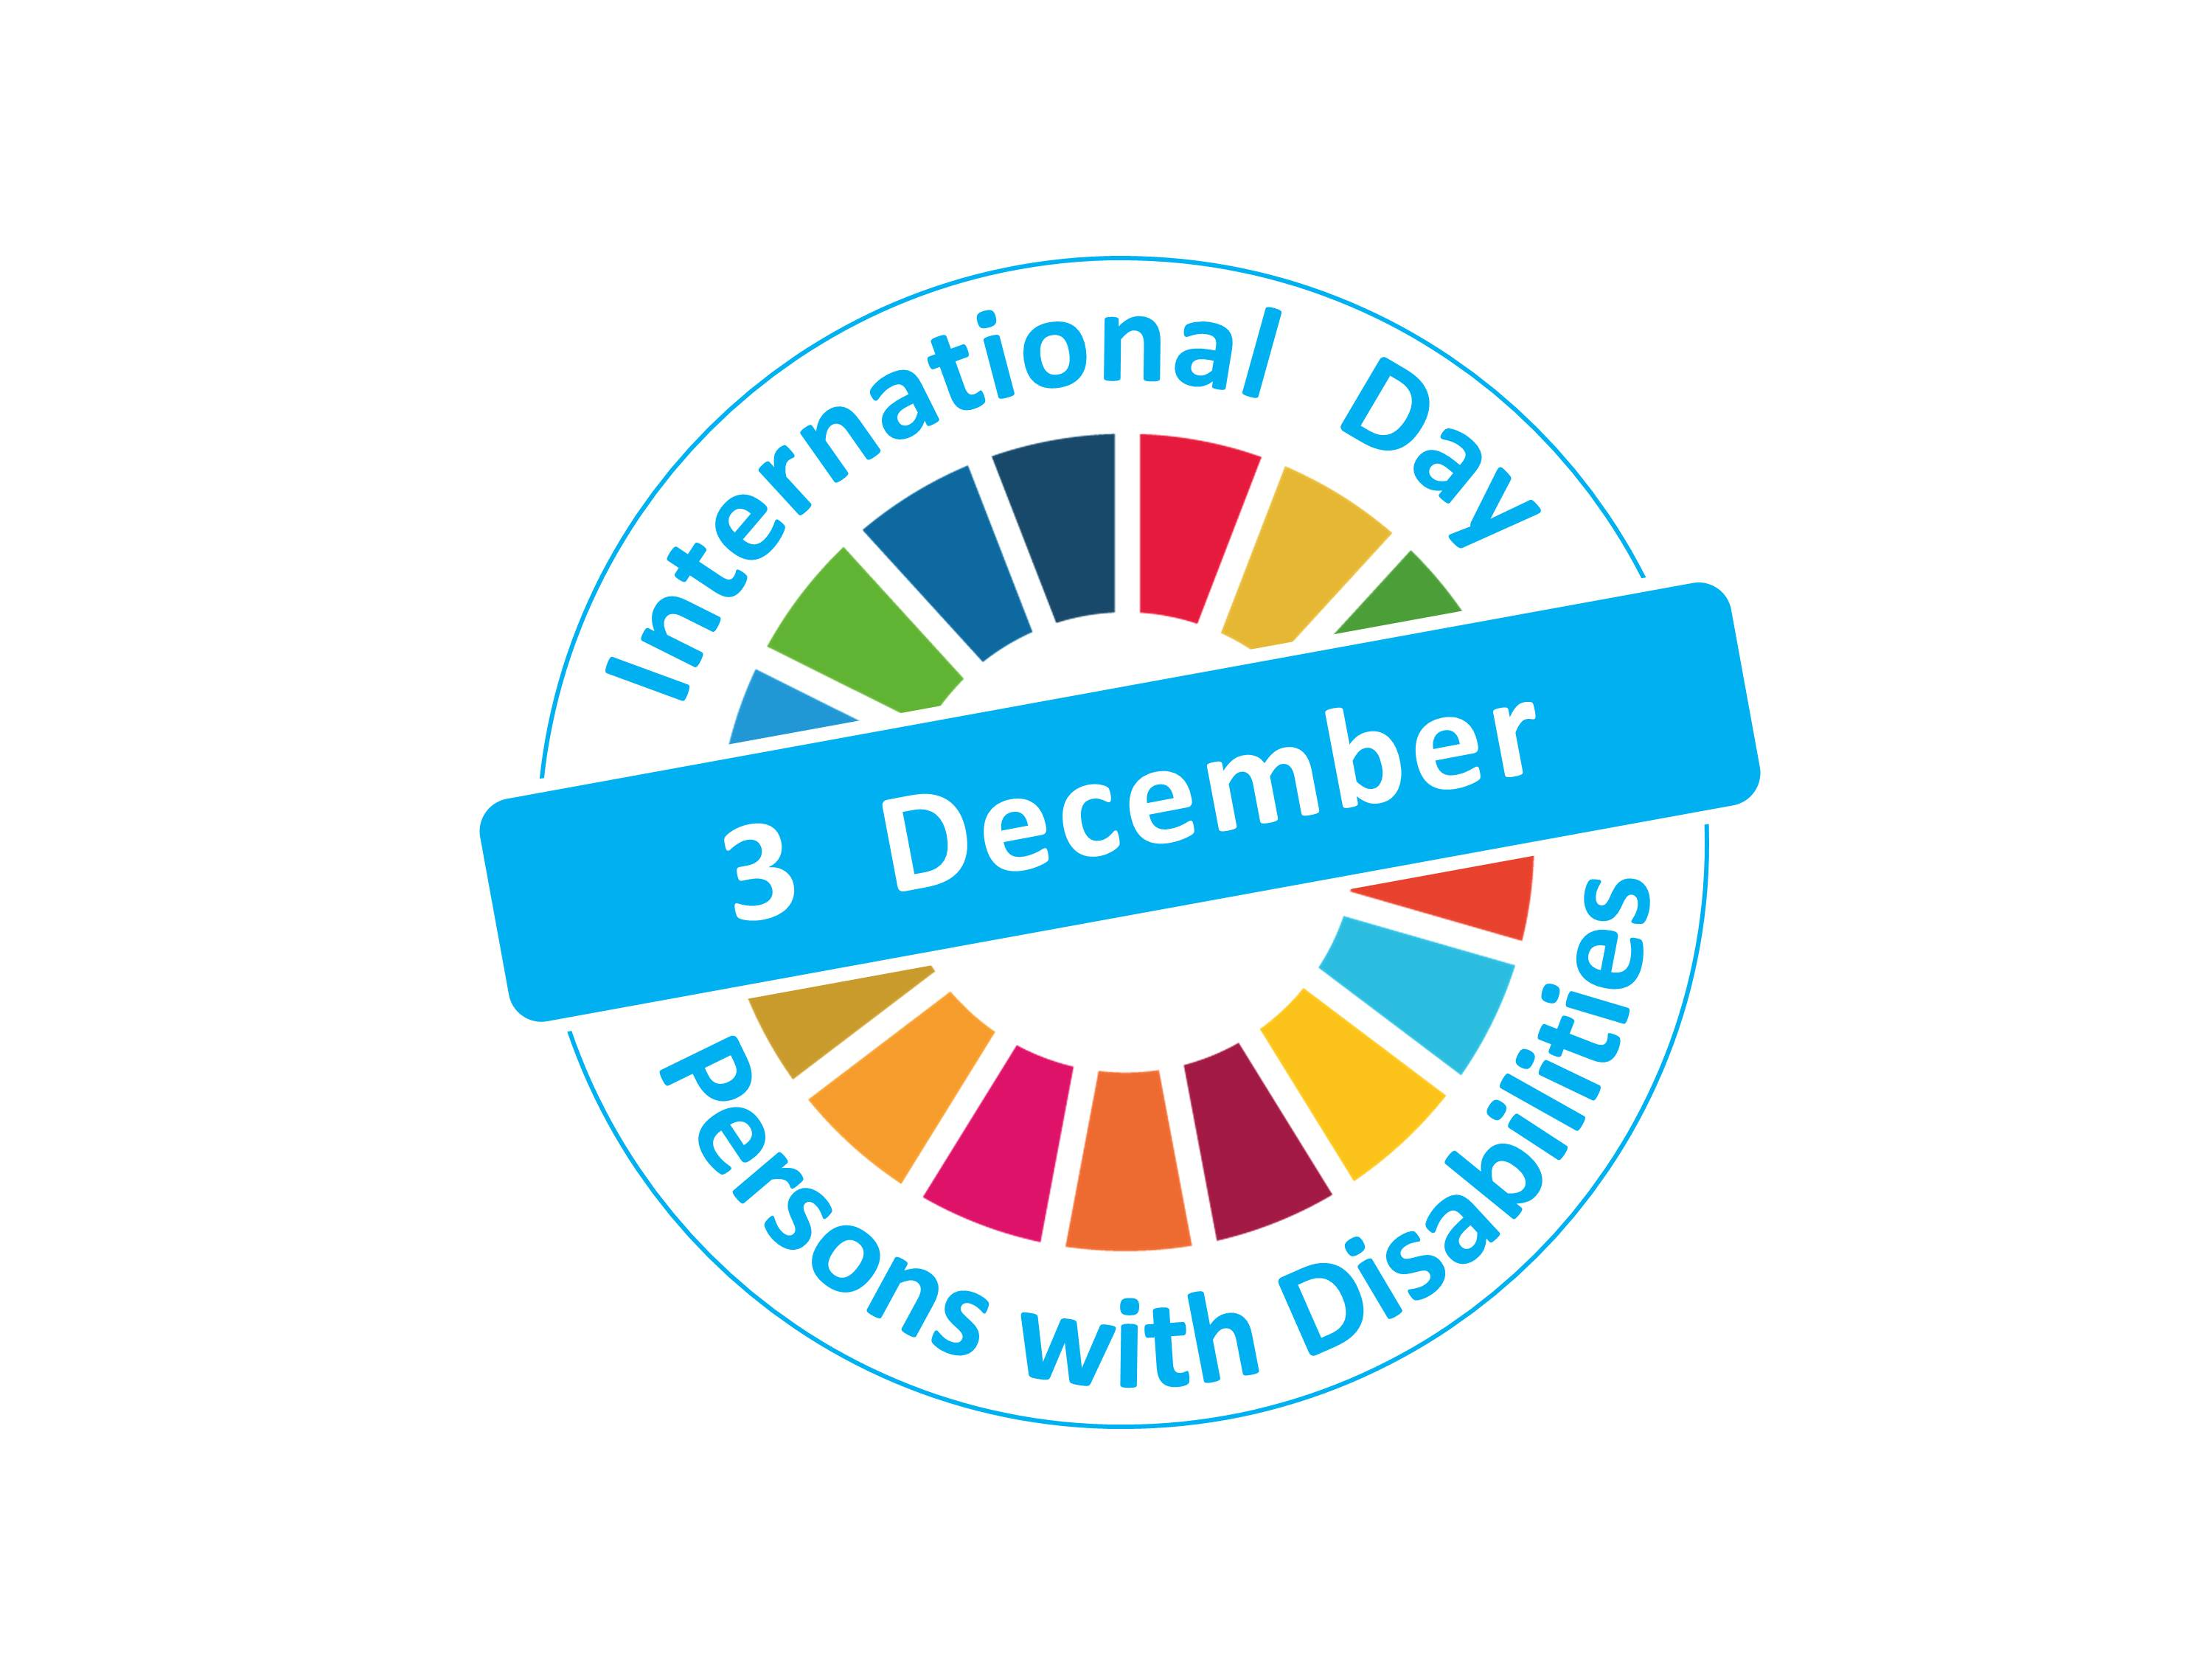 International Day of Persons with Disabilities 2016 - What's On ...